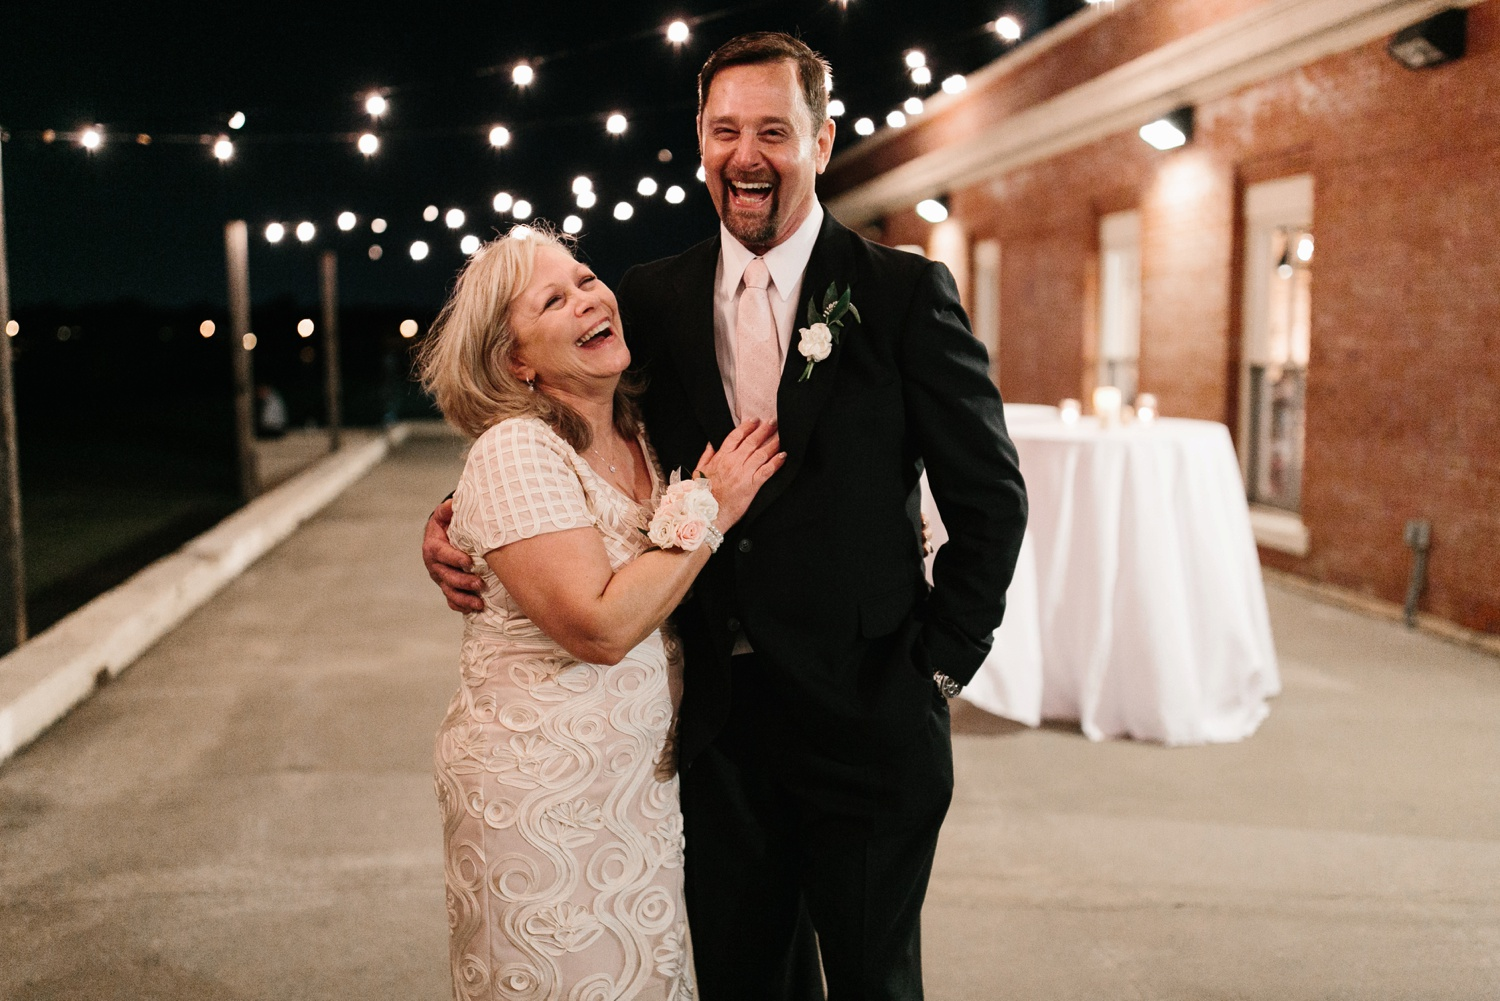 Kadee + Tyler | a raw, emotional wedding at the Filter Building on White Rock Lake in Dallas, TX by North Texas Wedding Photographer, Rachel Meagan Photography 204